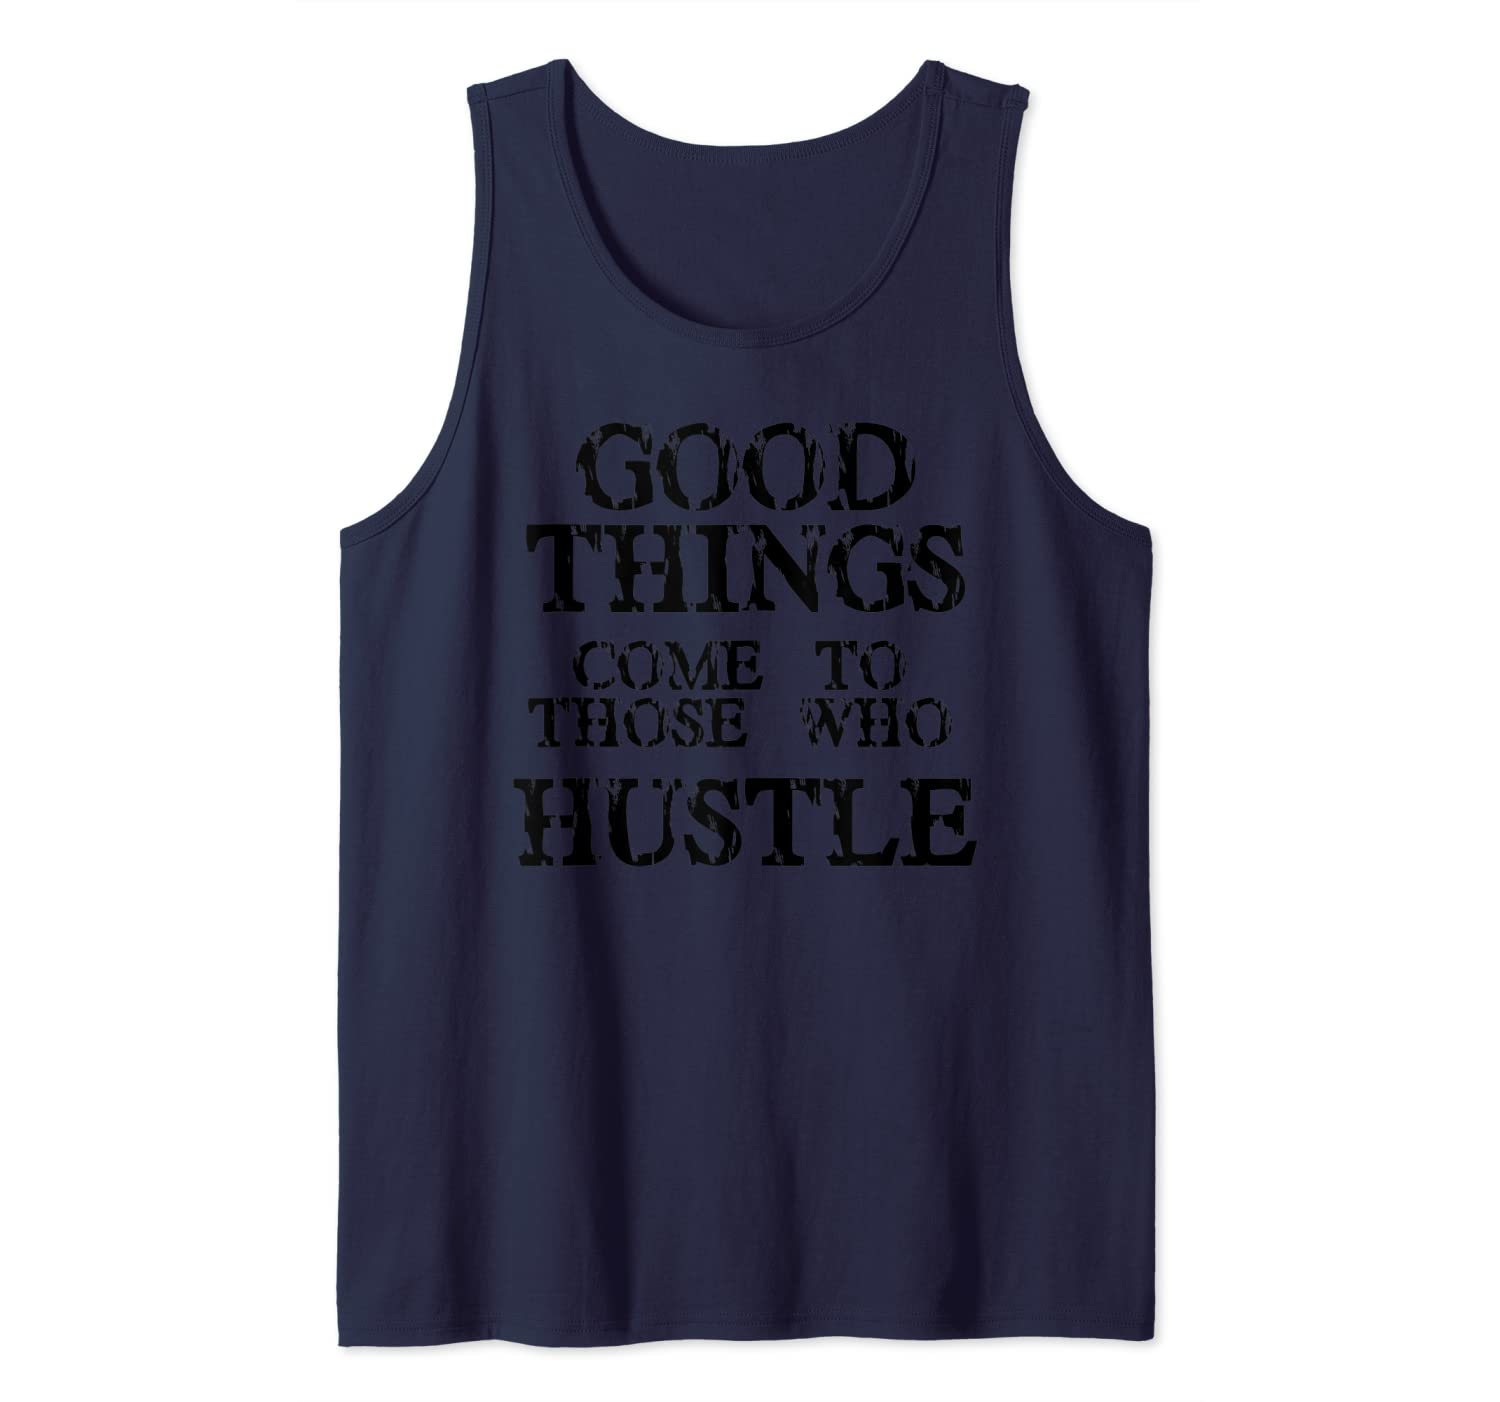 Good Things Come to Those Who Hustle Shirt for Hustlers Tank Top